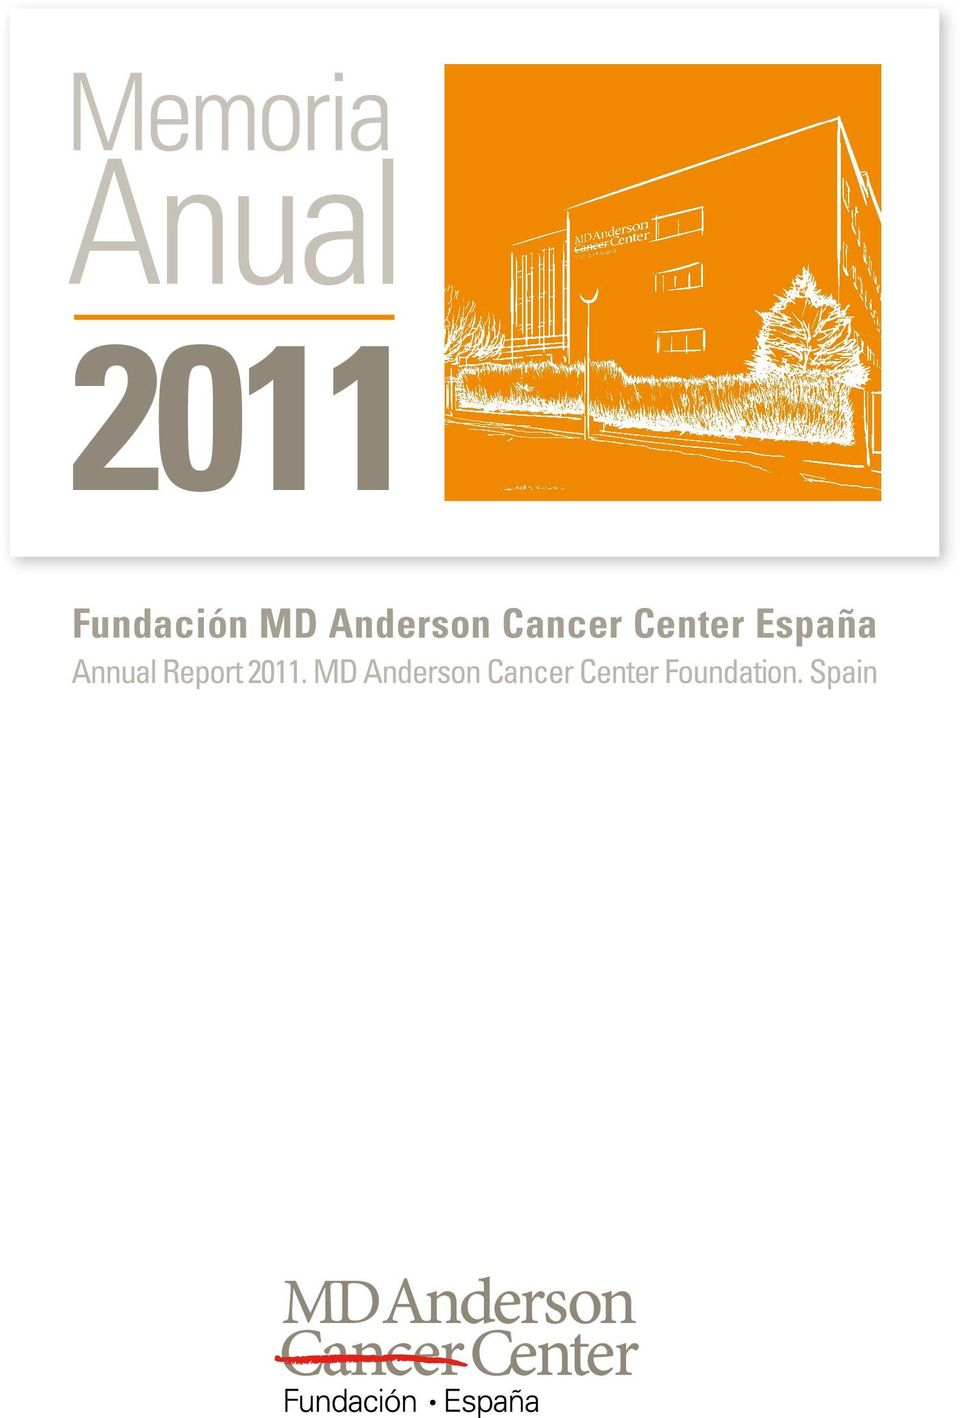 Spain Fundación MD Anderson Cancer Center